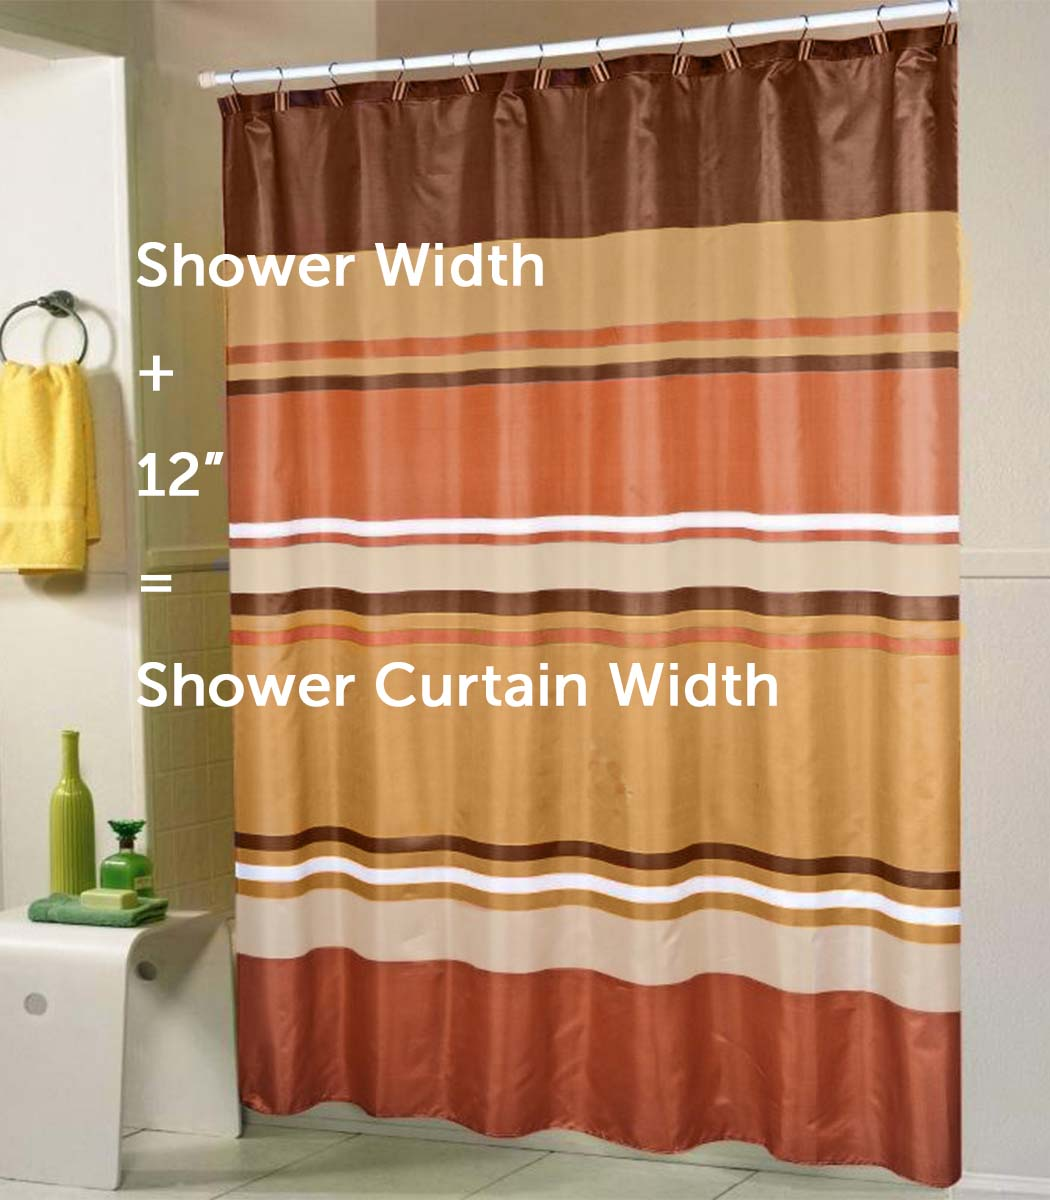 A Standard Shower Curtain Size Guide - Linen Store